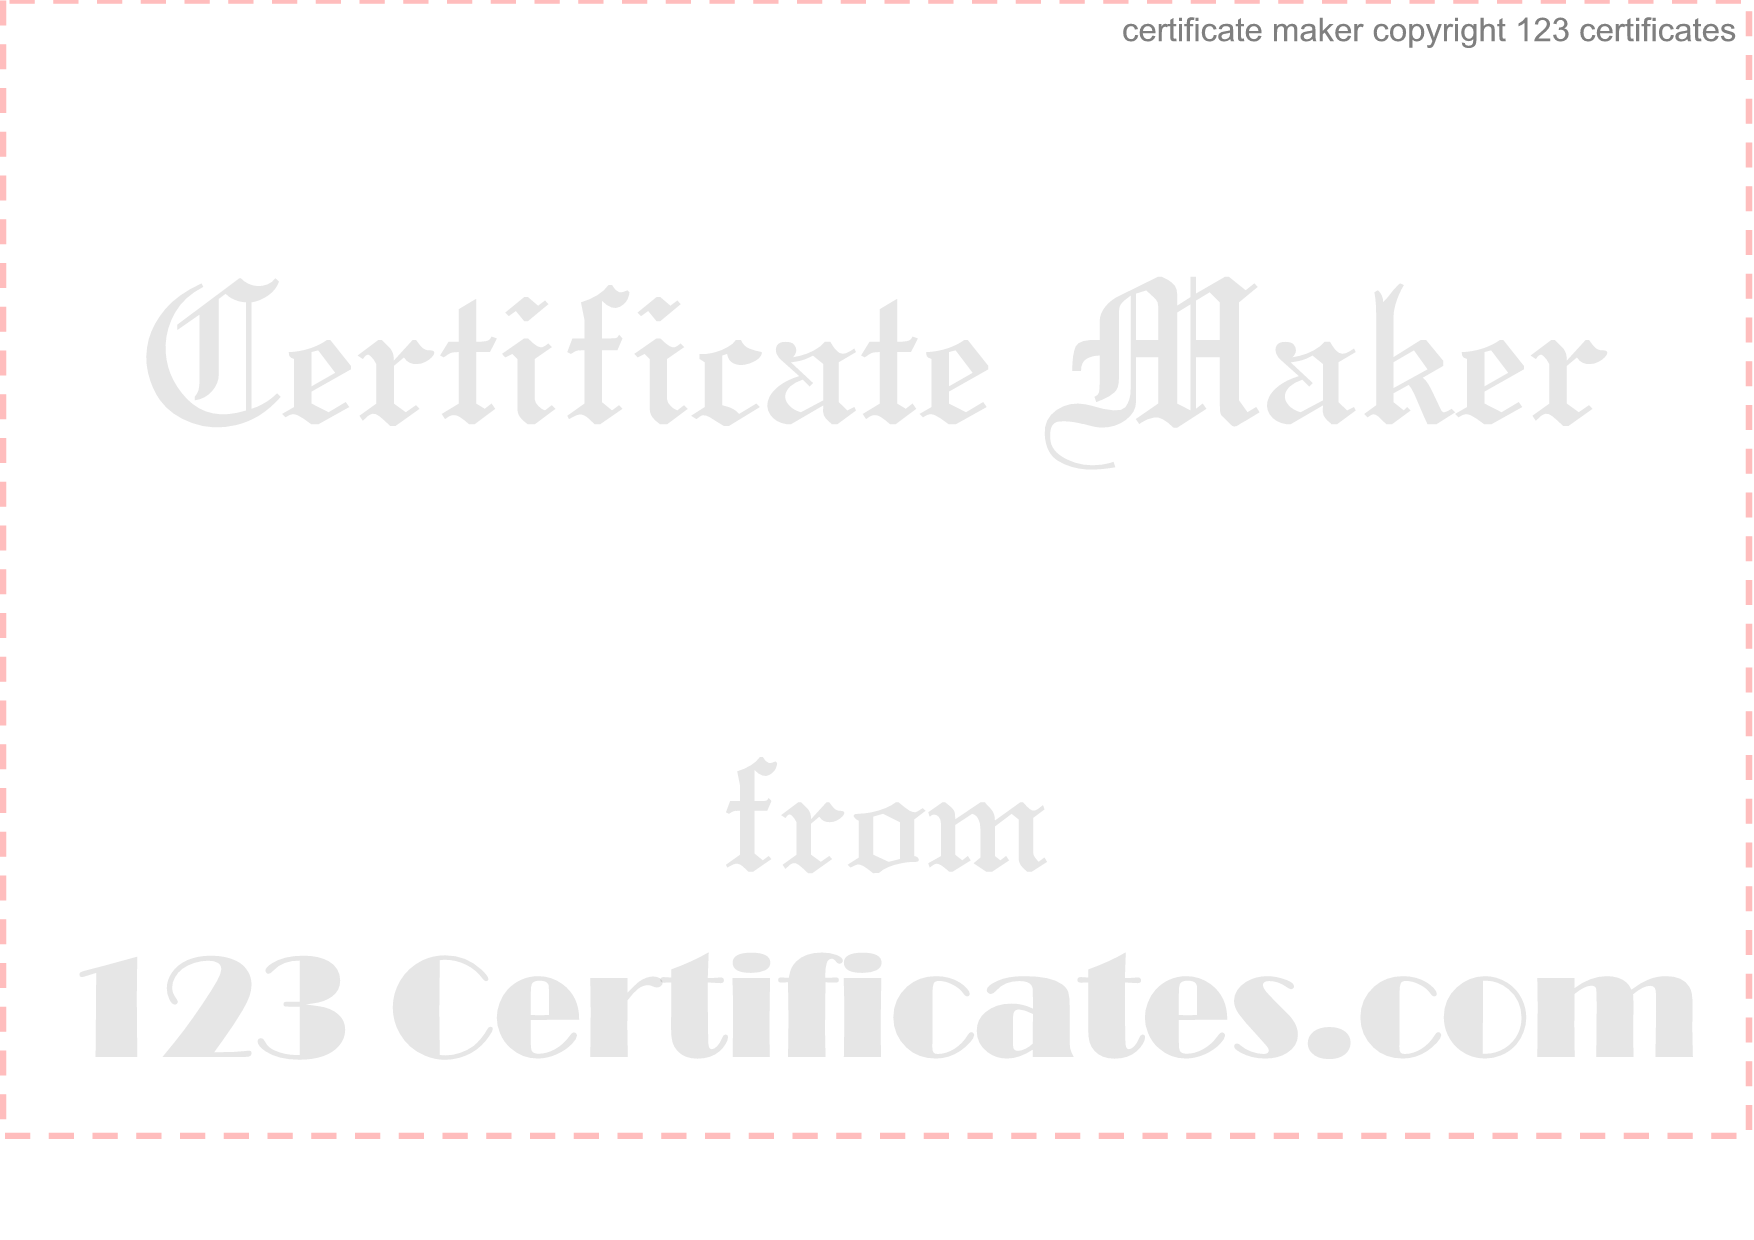 Certificate of Completion Template edit online or use the sample – Template Certificate of Completion